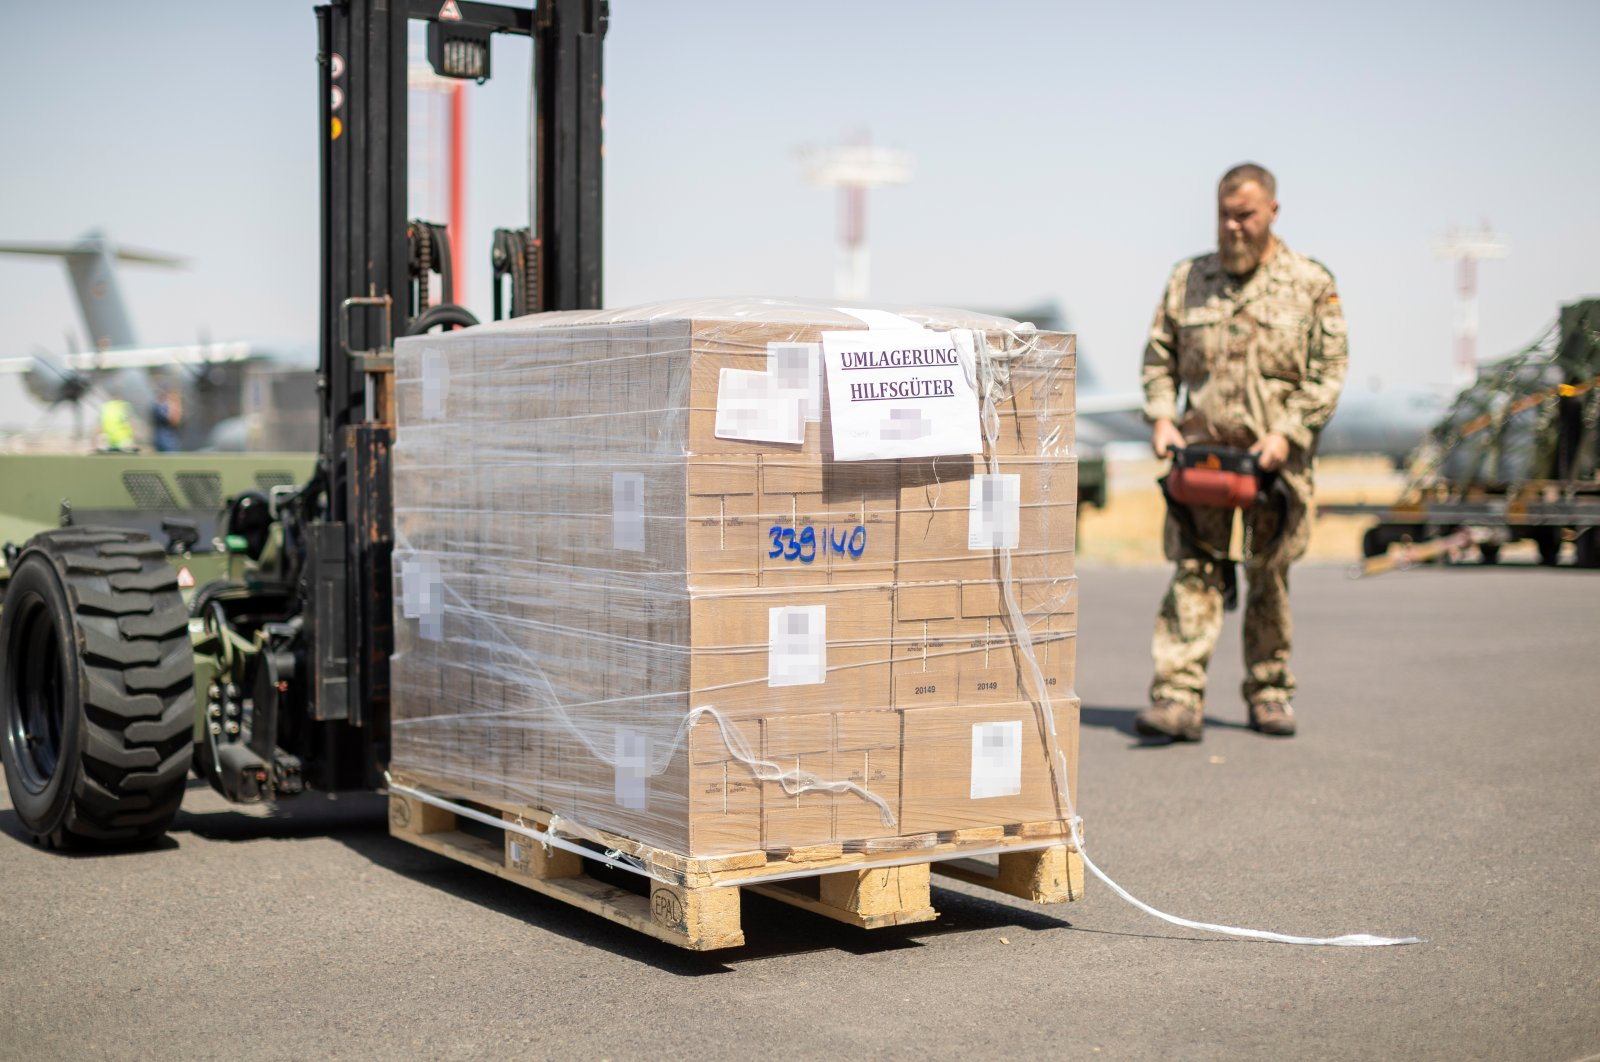 A soldier loads aid supplies destined for Afghanistan on a transport aircraft of the German Air Force at Tashkent airport, Uzbekistan, Aug. 22, 2021. (Handout from German Air Force via EPA)